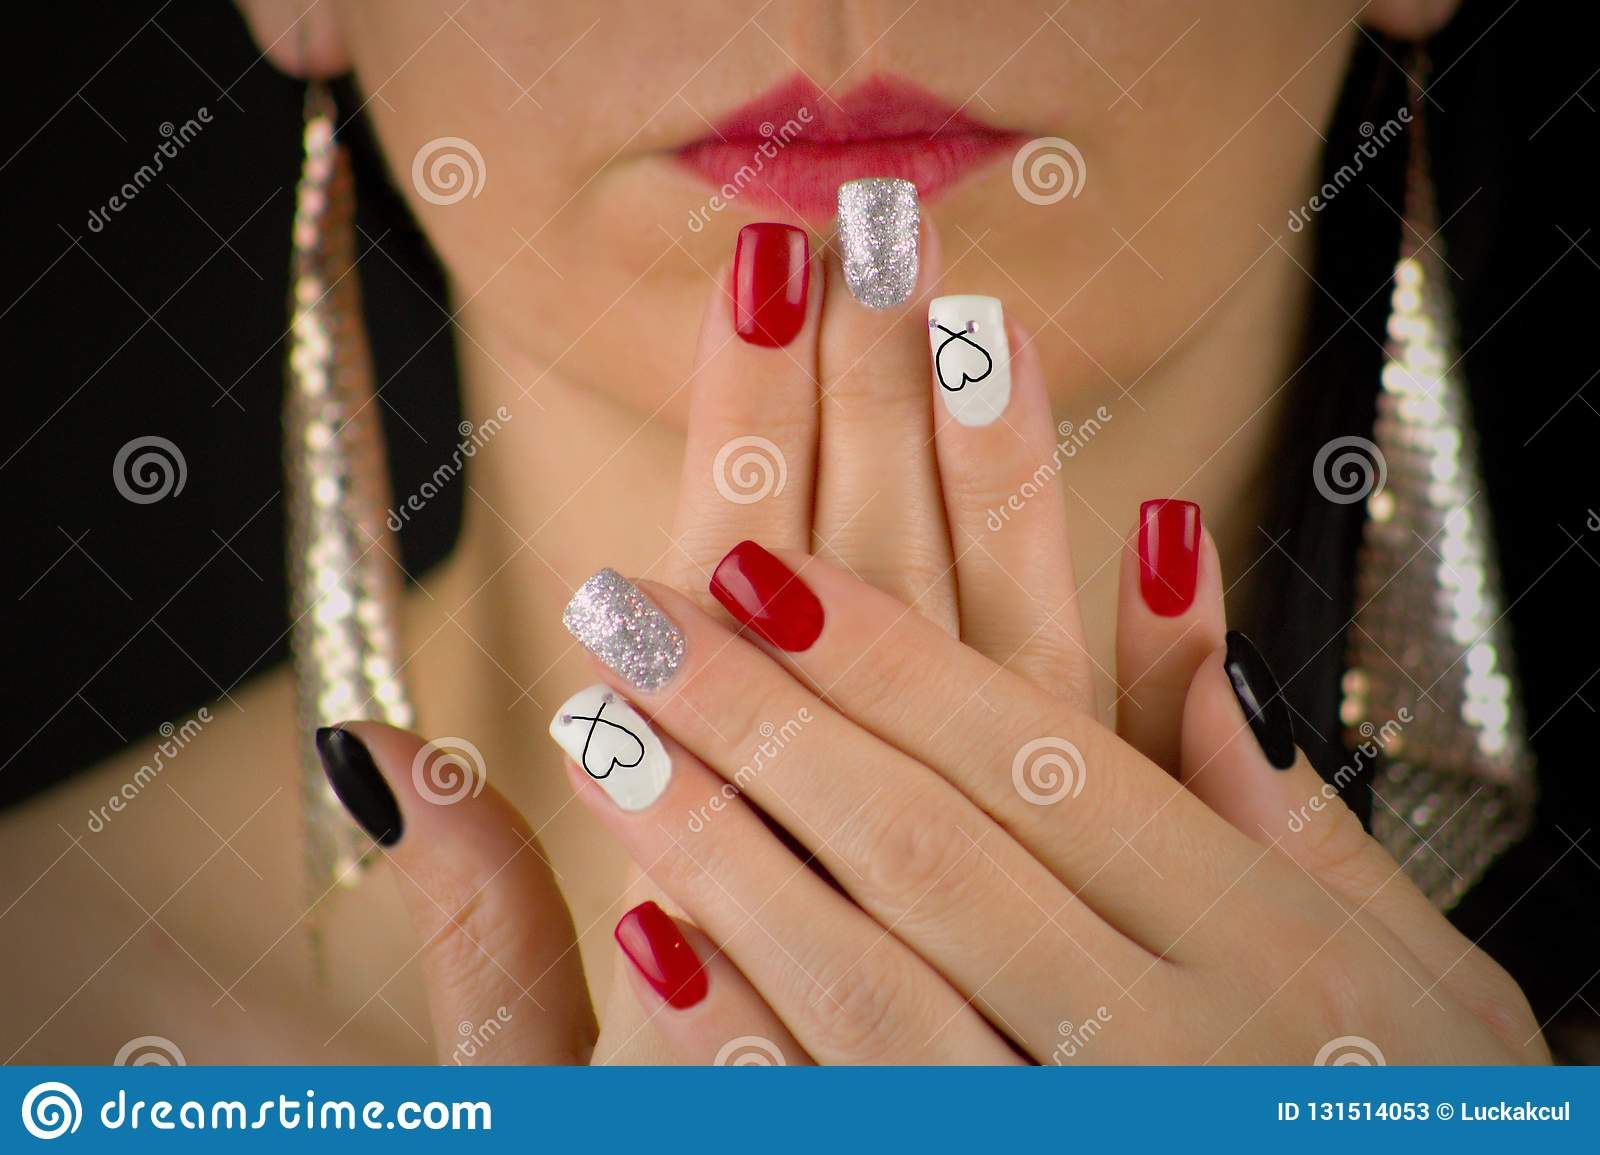 The Woman Has Red Black Glittering Silver And White Nails With Heart She Holds Her Palms In Front Of Her Face She Has Red Lips Stock Image Image Of Palms Lips 131514053